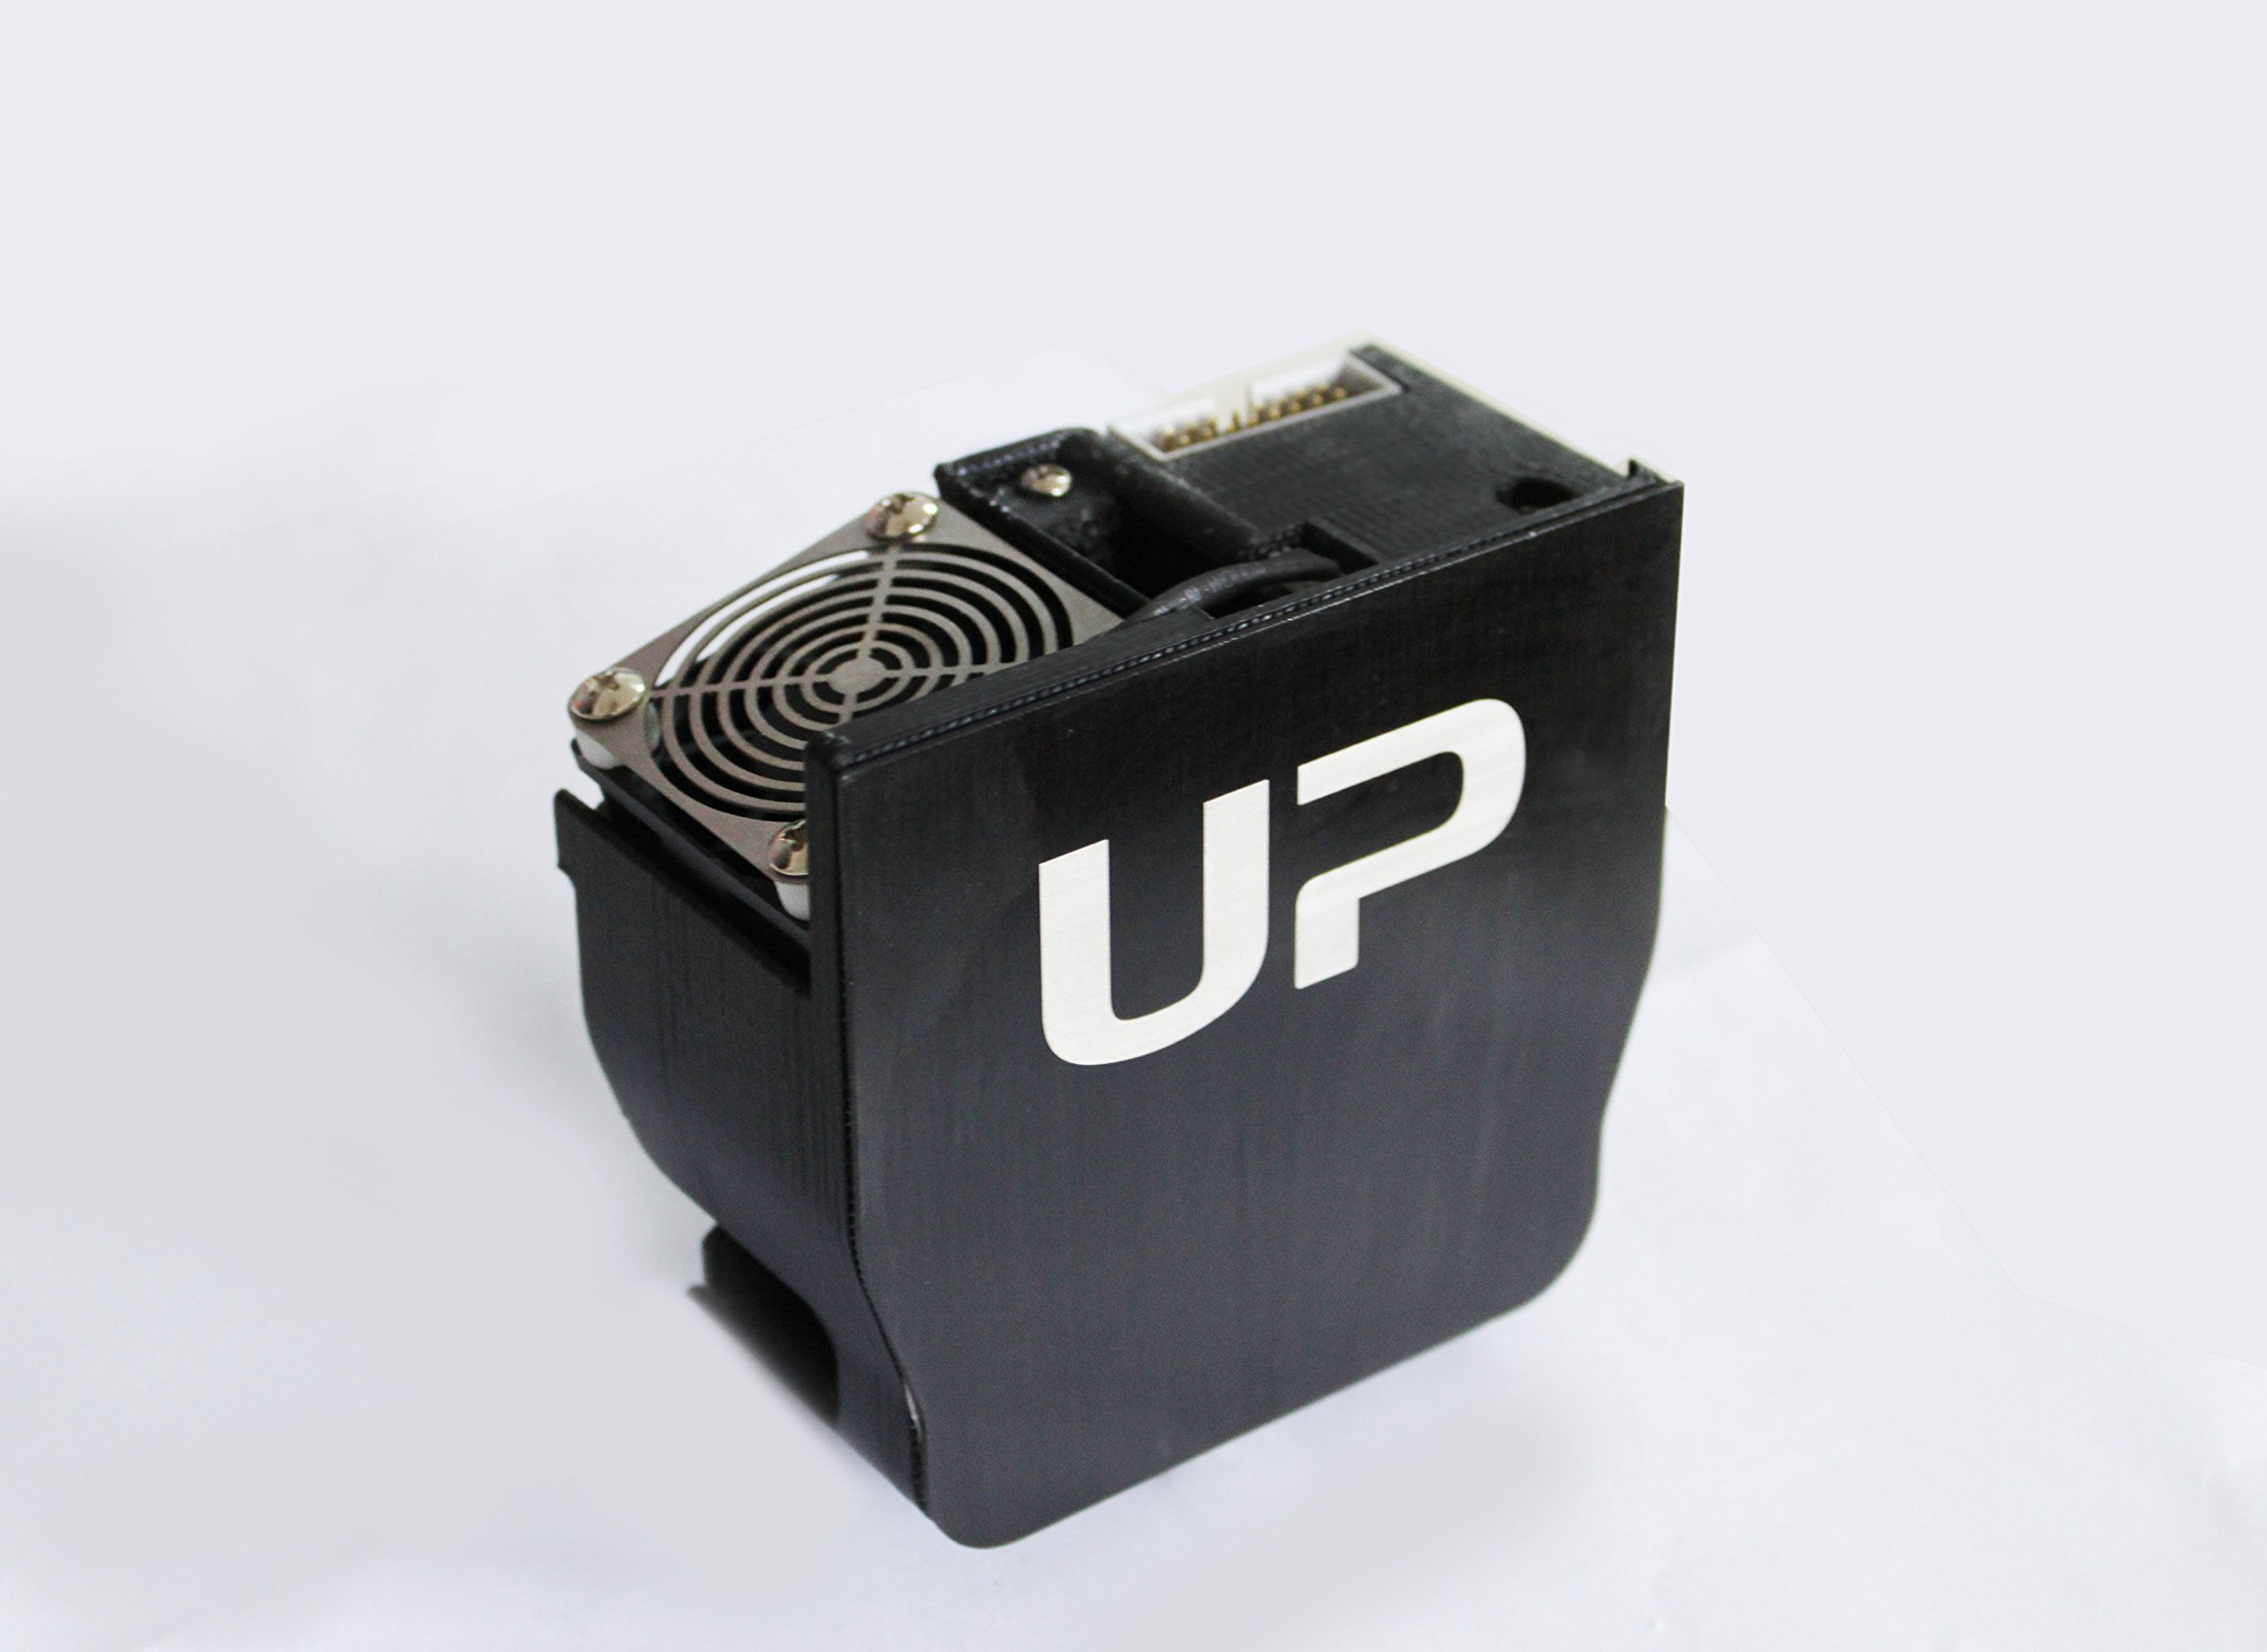 UP mini 2 extruder V2- 0.4mm Brass Nozzle 1.75mm Filament Direct Feed 8mm outside diameter